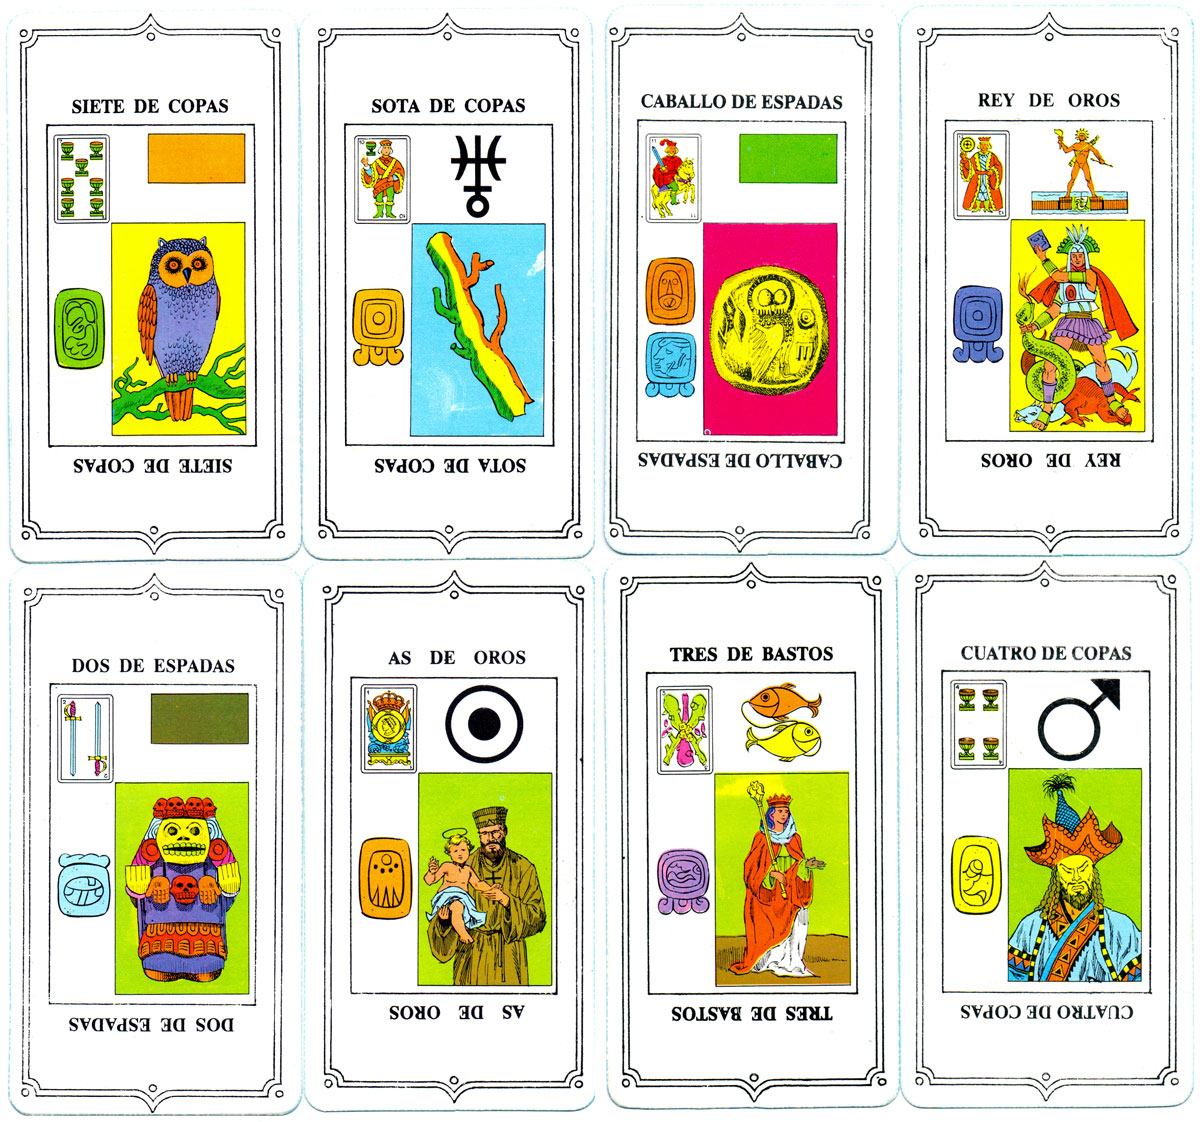 'Cartomancia Astrología Quirologia Tests' fortune-telling cards, 40 large-size cards in box, Argentina, c.1985